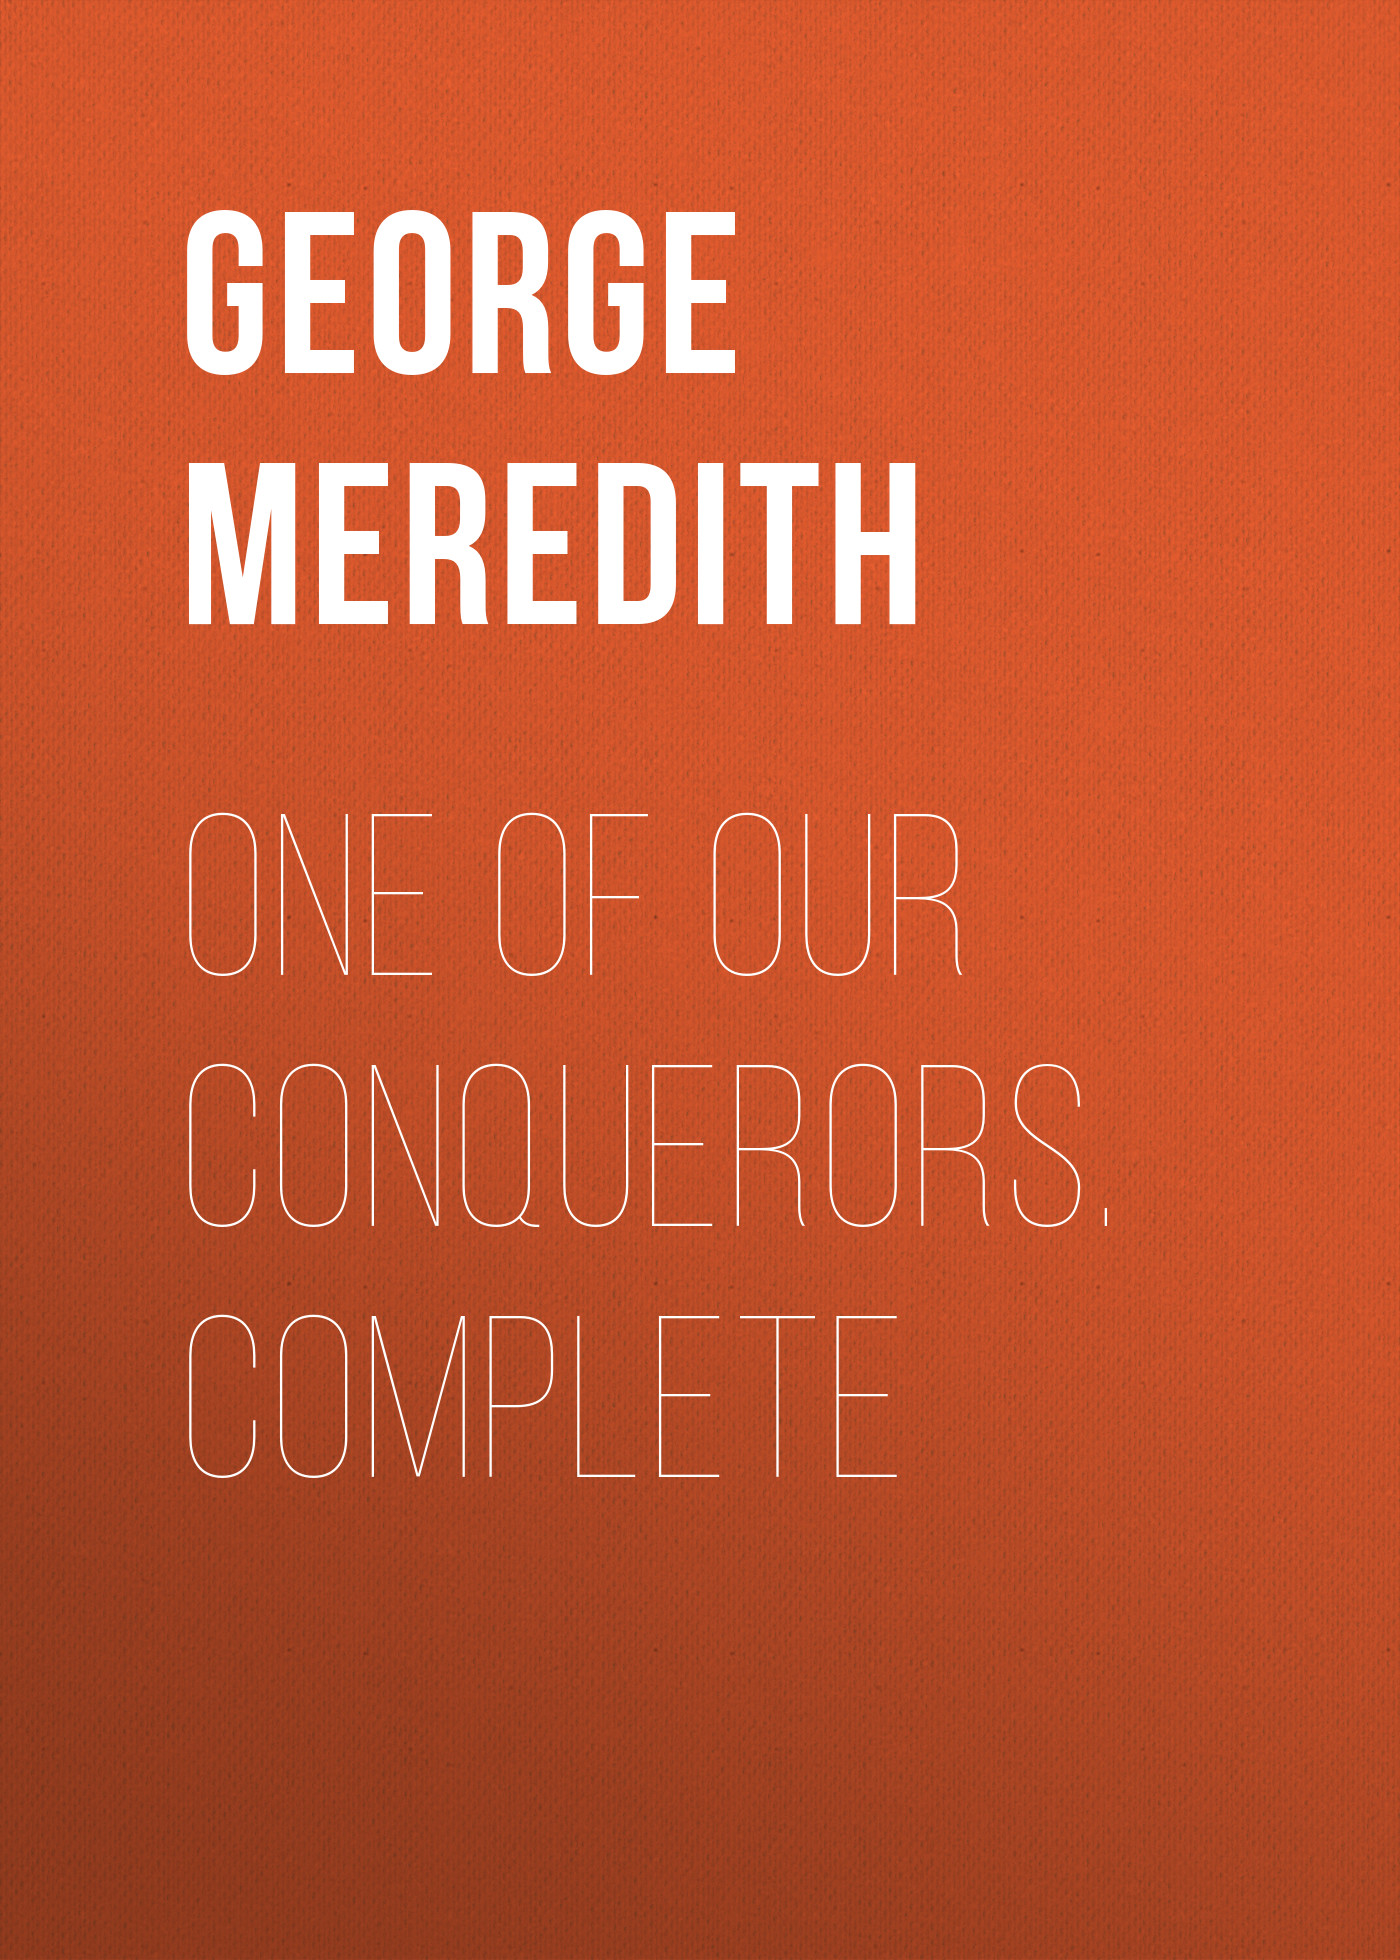 George Meredith One of Our Conquerors. Complete george meredith complete short works of george meredith